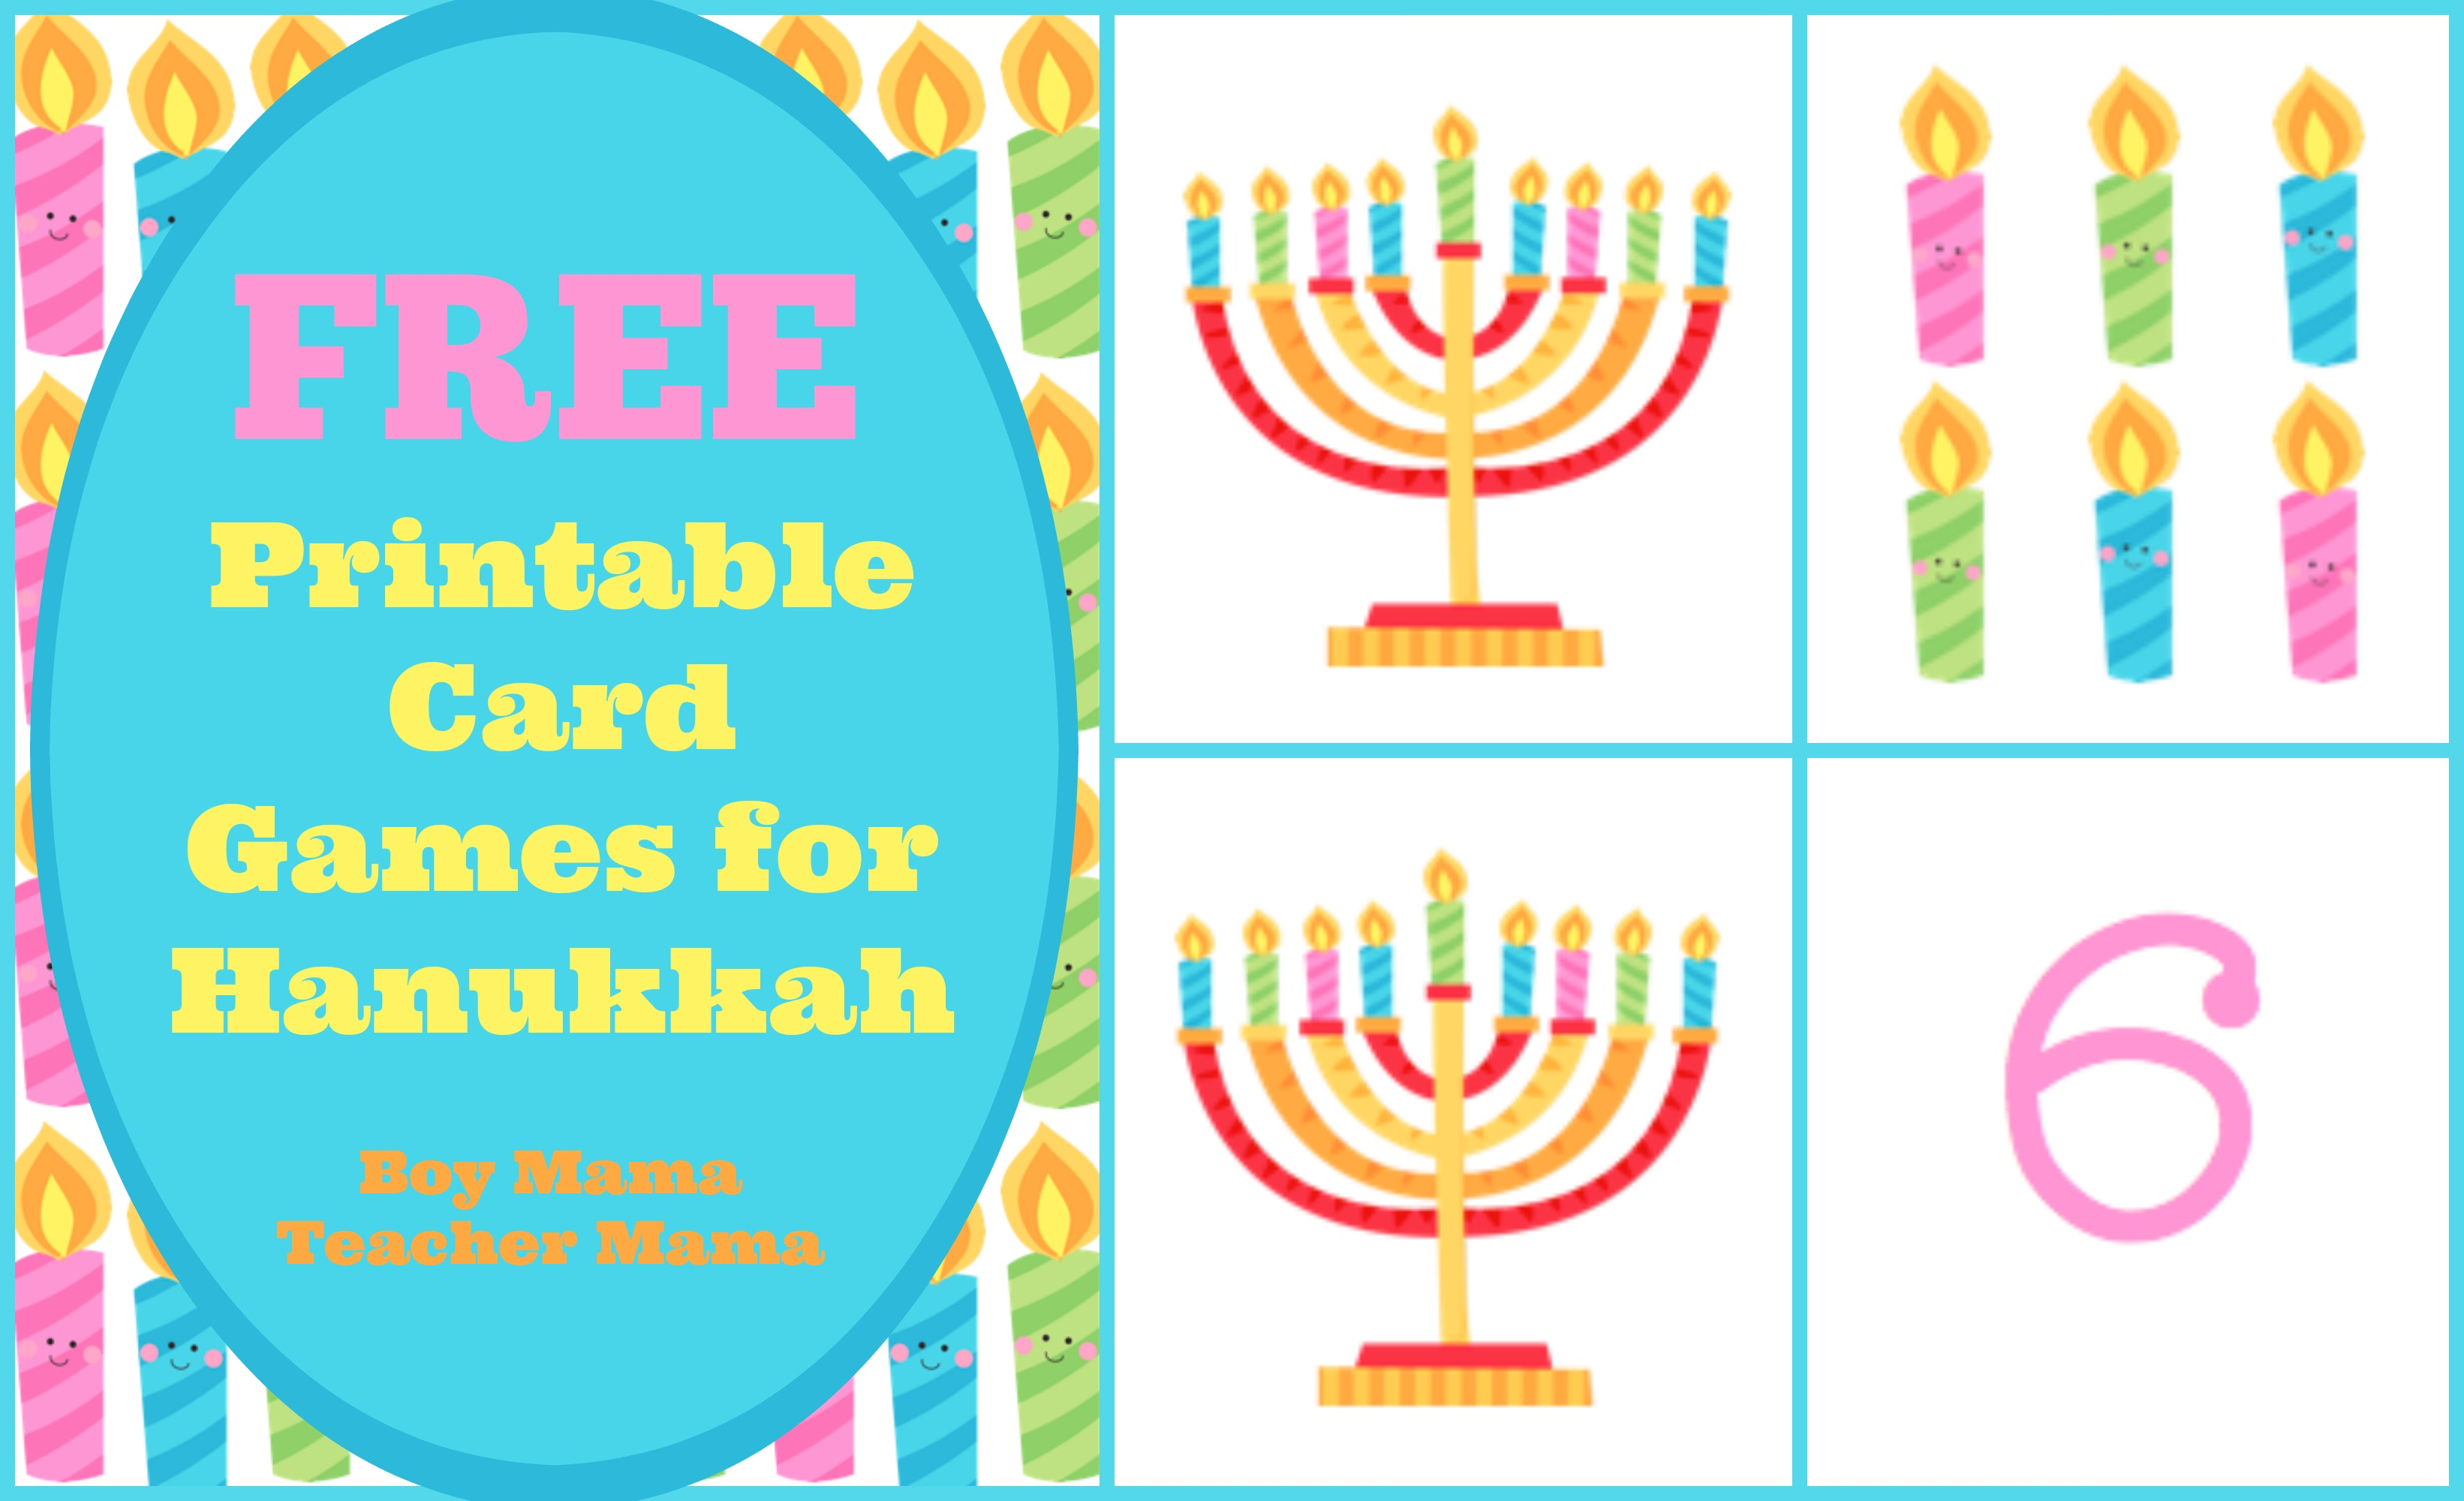 boy mama free printable card games for hanukkah boy mama teacher mama